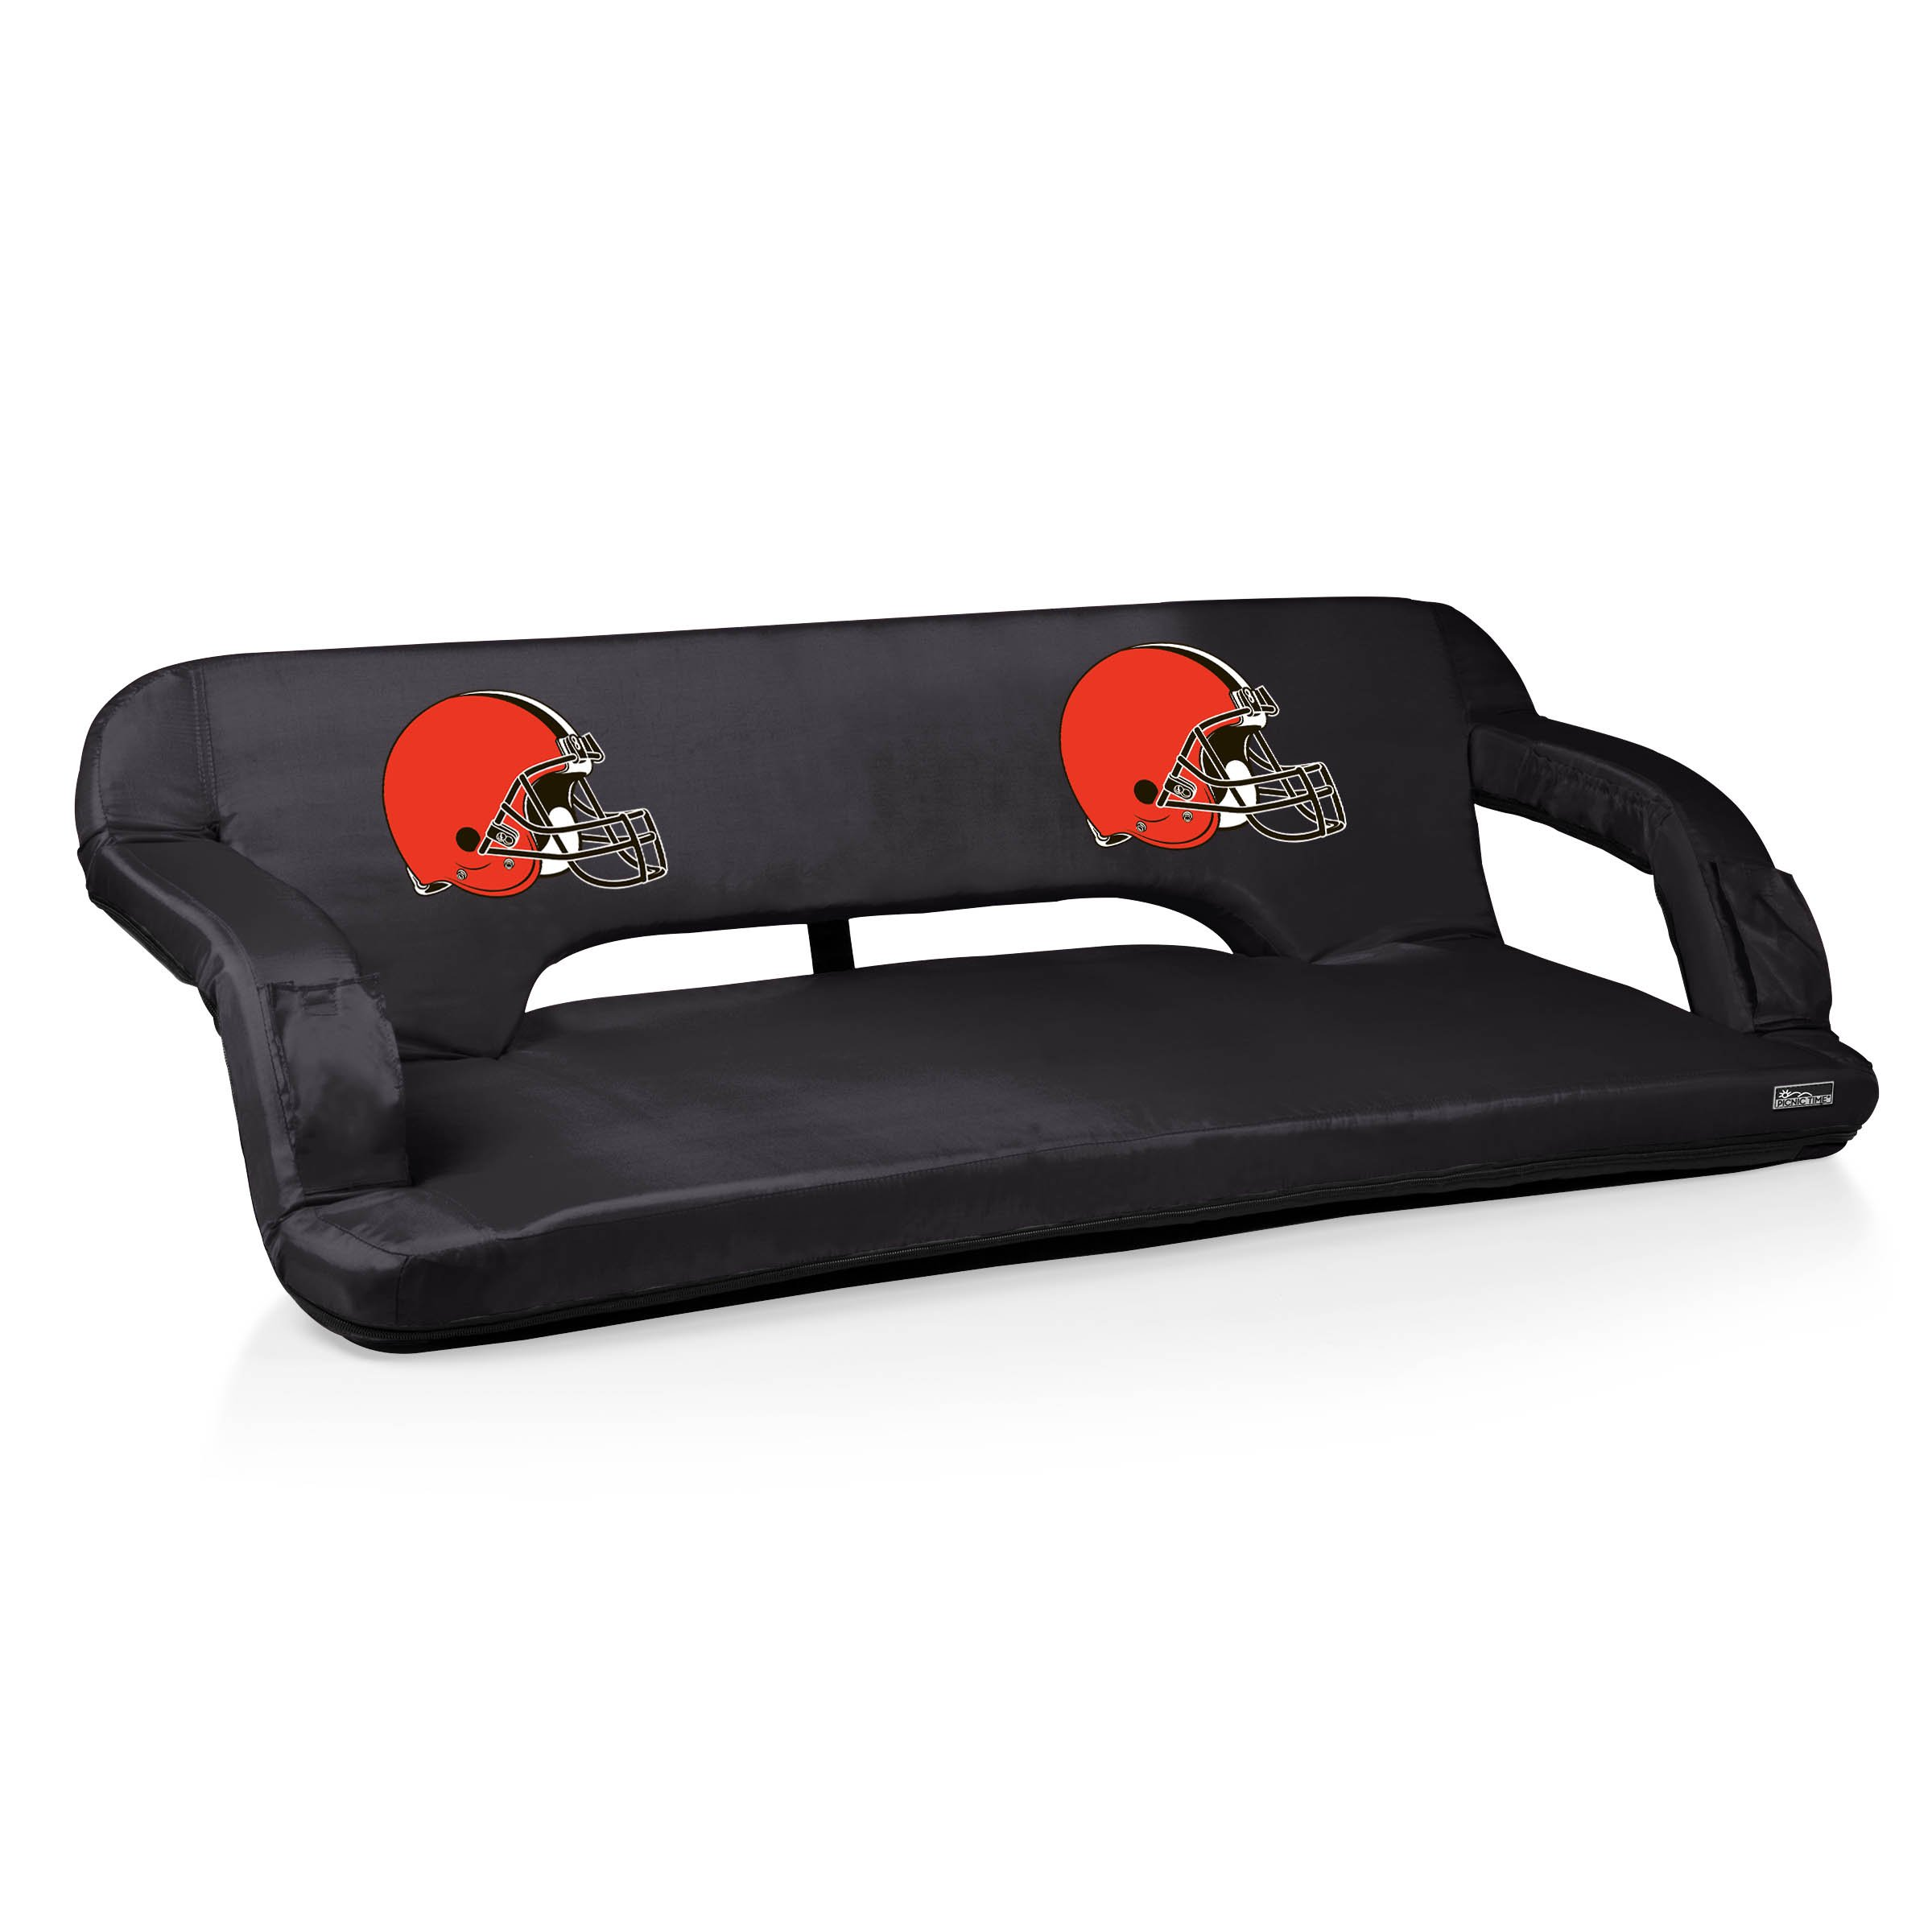 NFL Cleveland Browns Digital Print Reflex Travel Couch, One Size, Black